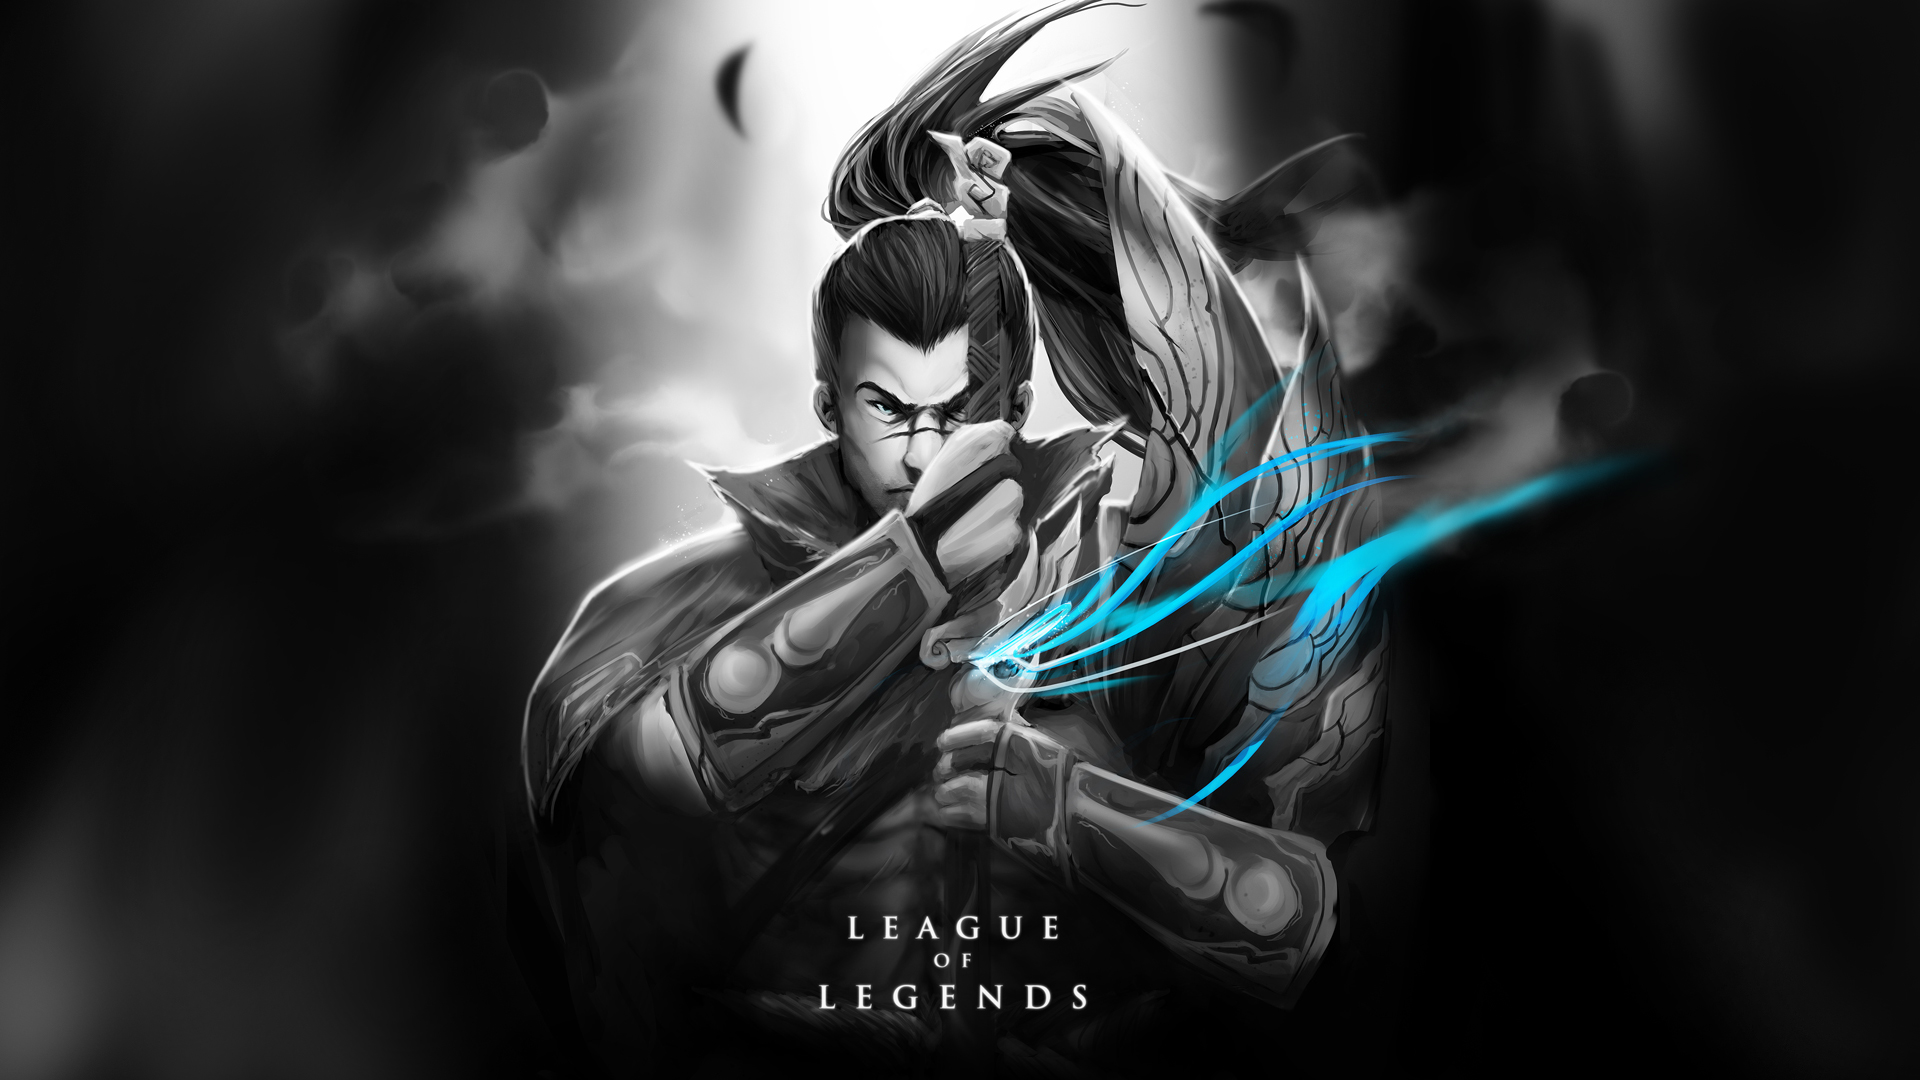 Yasuo League Of Legends Wallpapers Hd 1920x1080 League Of Legends